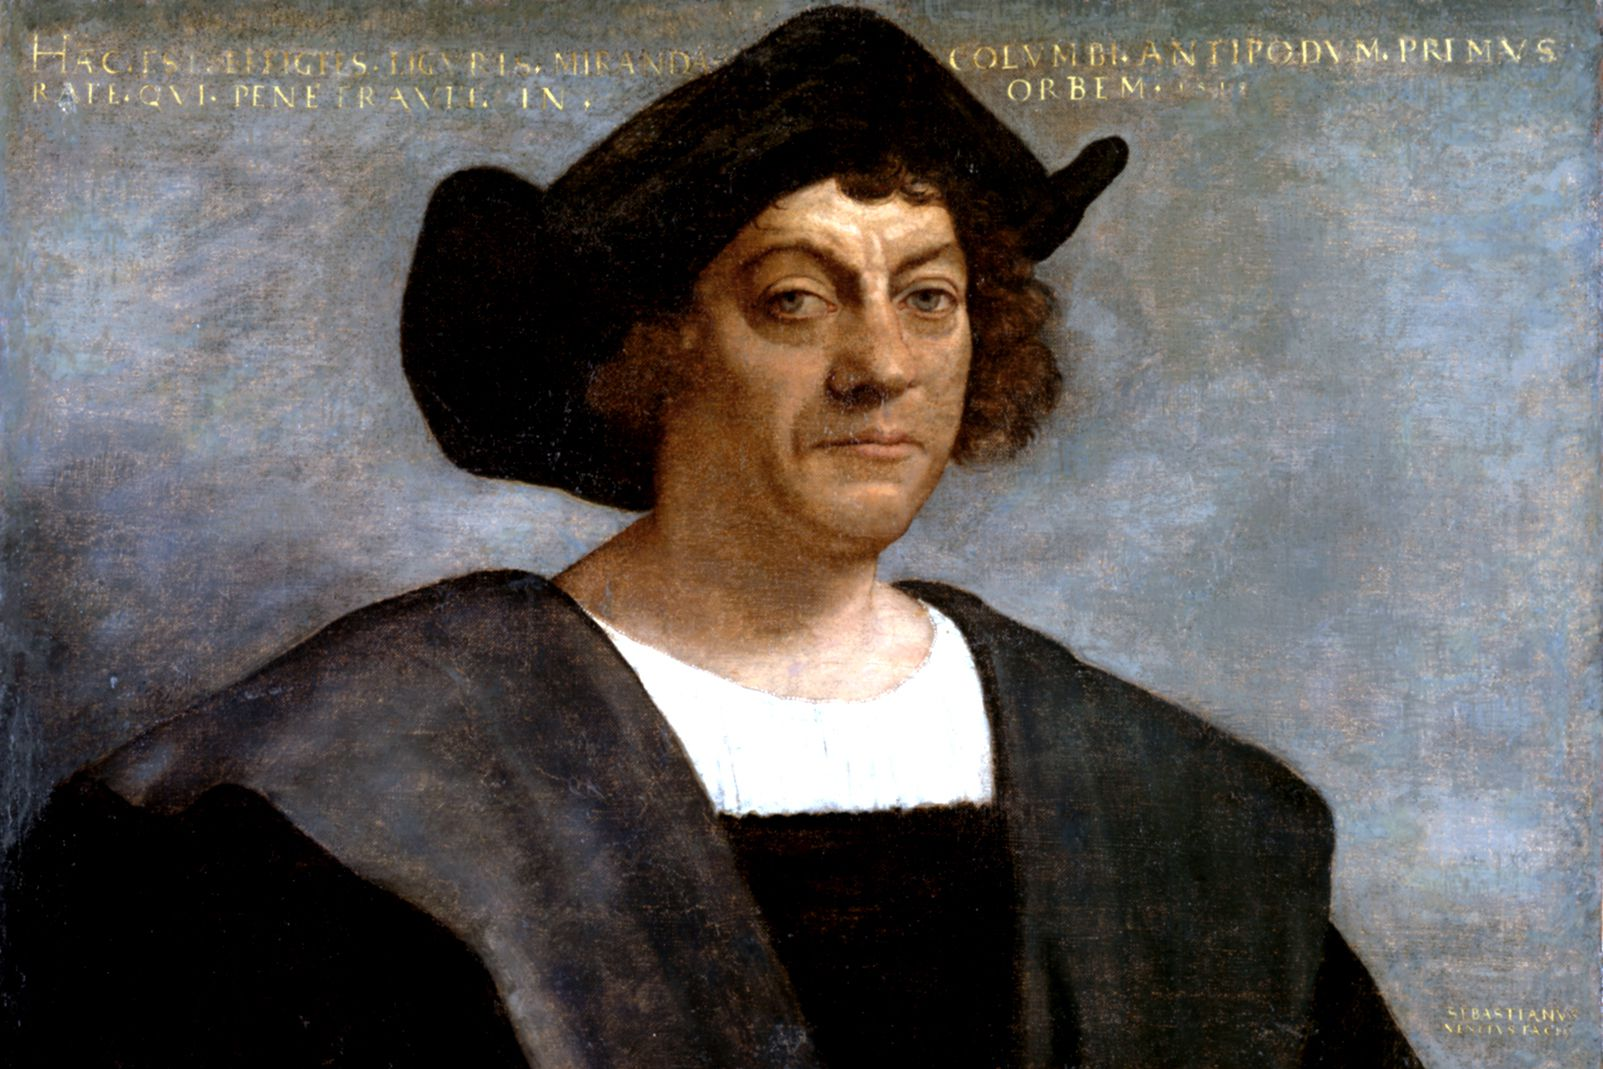 christopher columbus the hero essay Some think he was a brave hero and others think he was a monster who brought slavery and disease to the new world what's the truth about columbus.